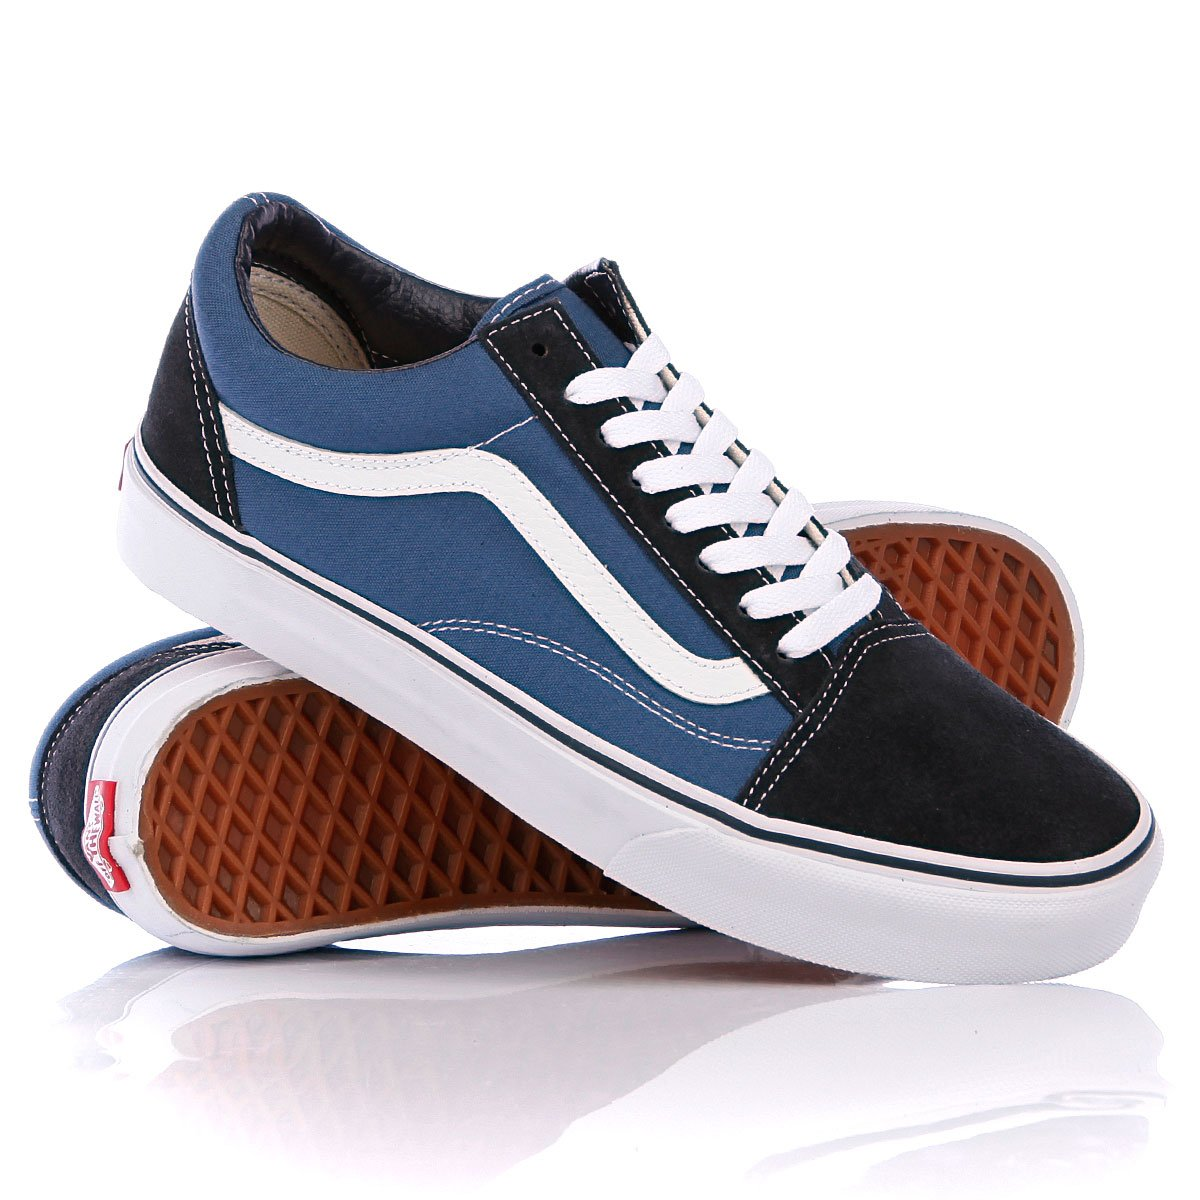 d96e4c287 Купить кеды Vans Old Skool Navy (280413vans17) в интернет-магазине  Proskater.kz